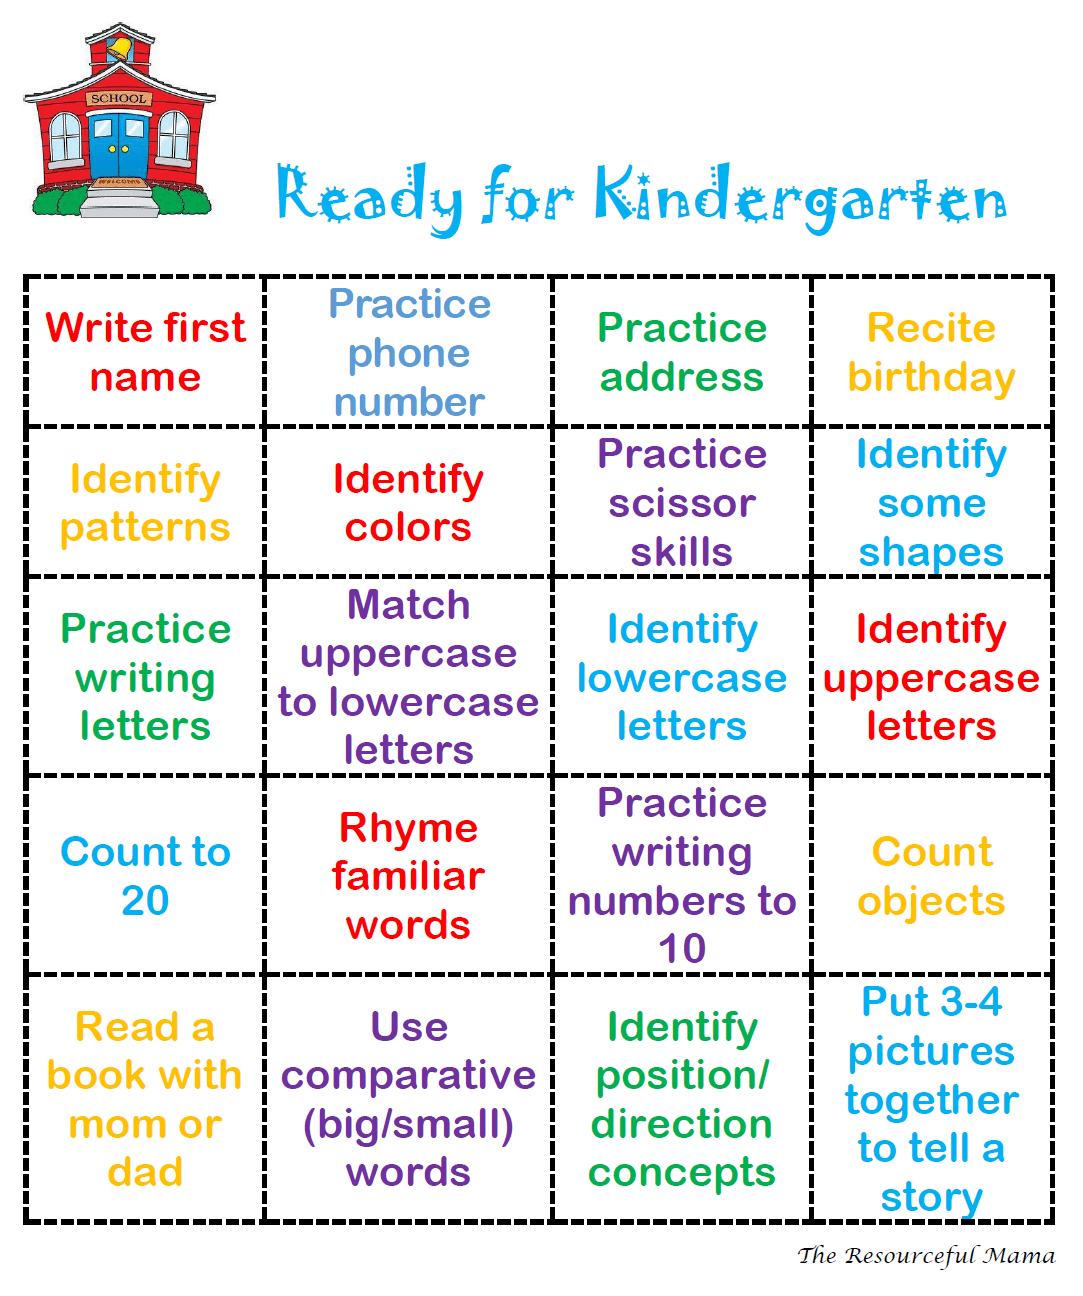 Do You Have Any Kids Entering Kindergarten This Fall